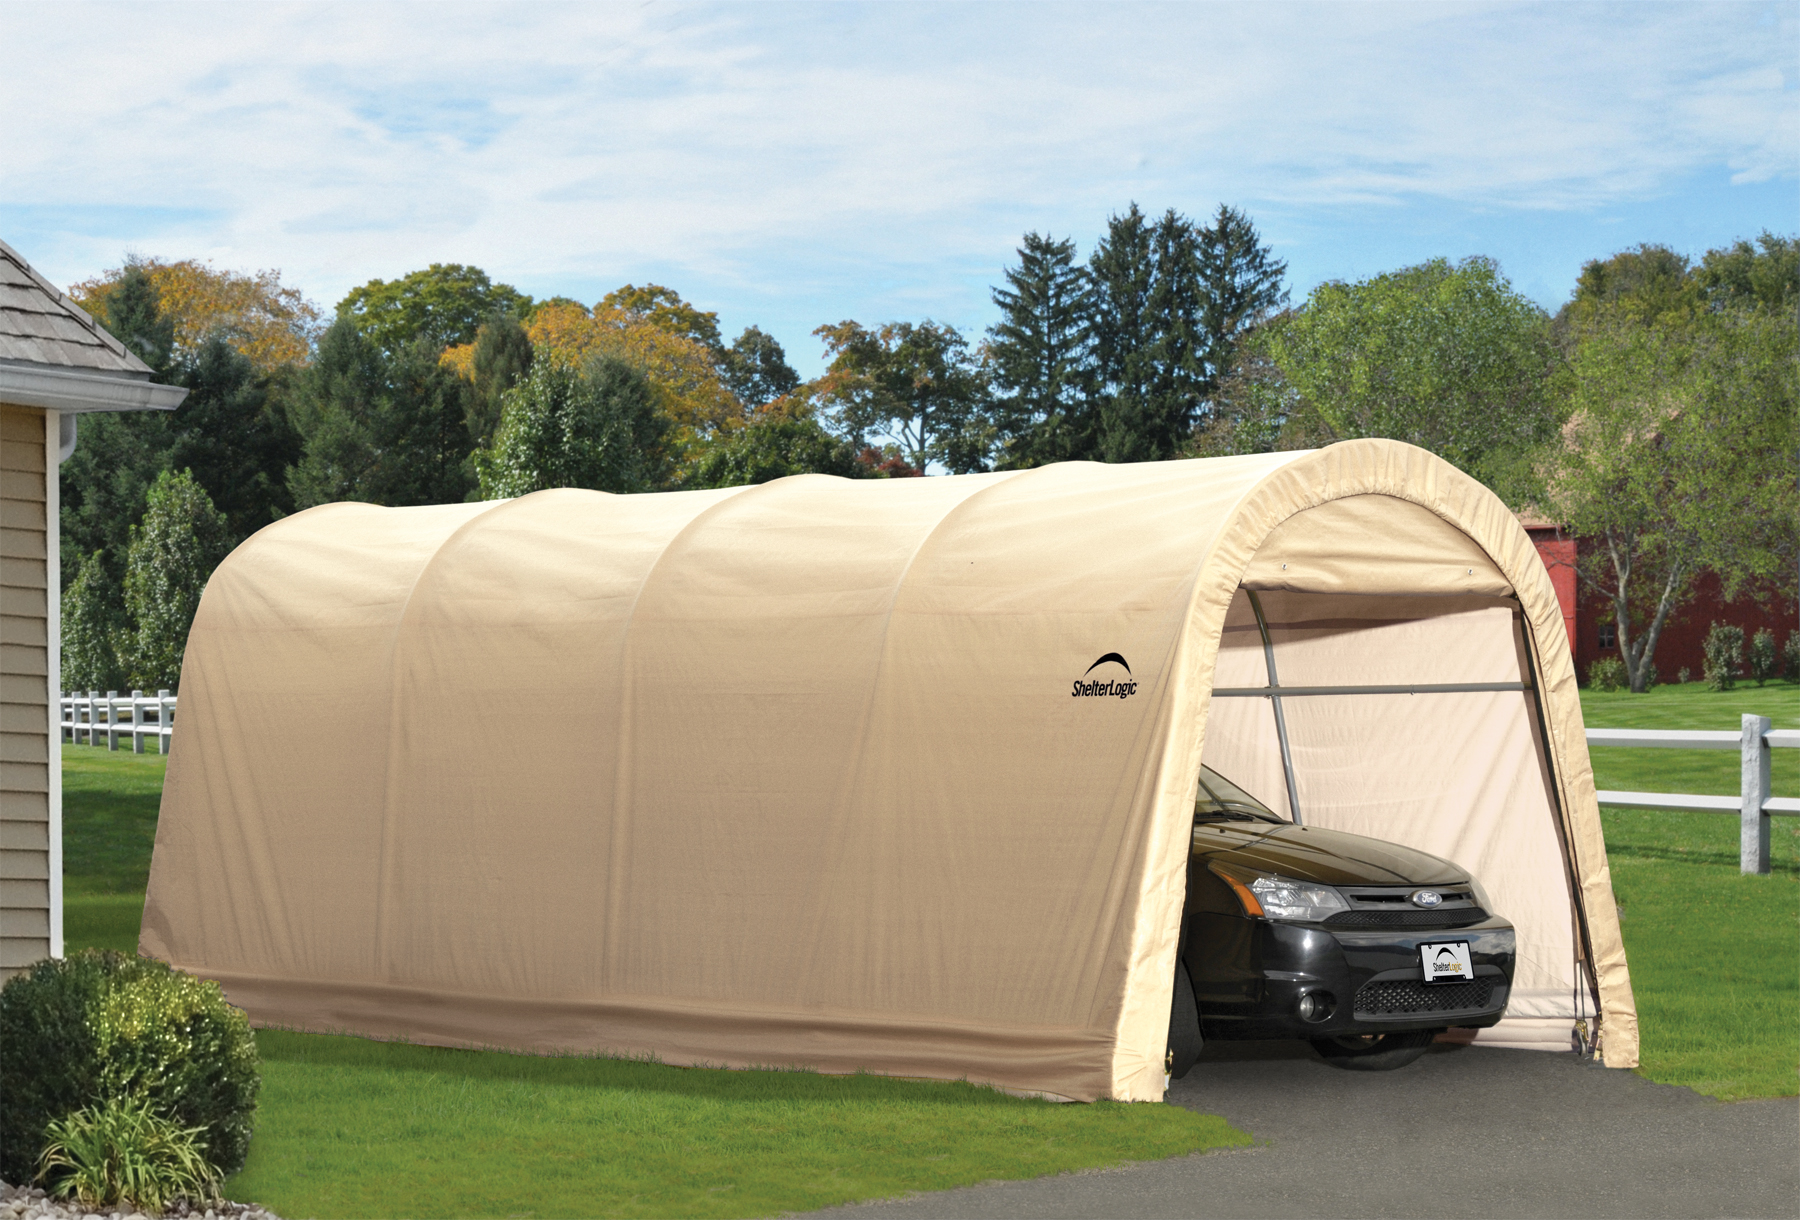 Replacement Covers Shelter Garage 120 240 : Autoshelter roundtop portable garage creative